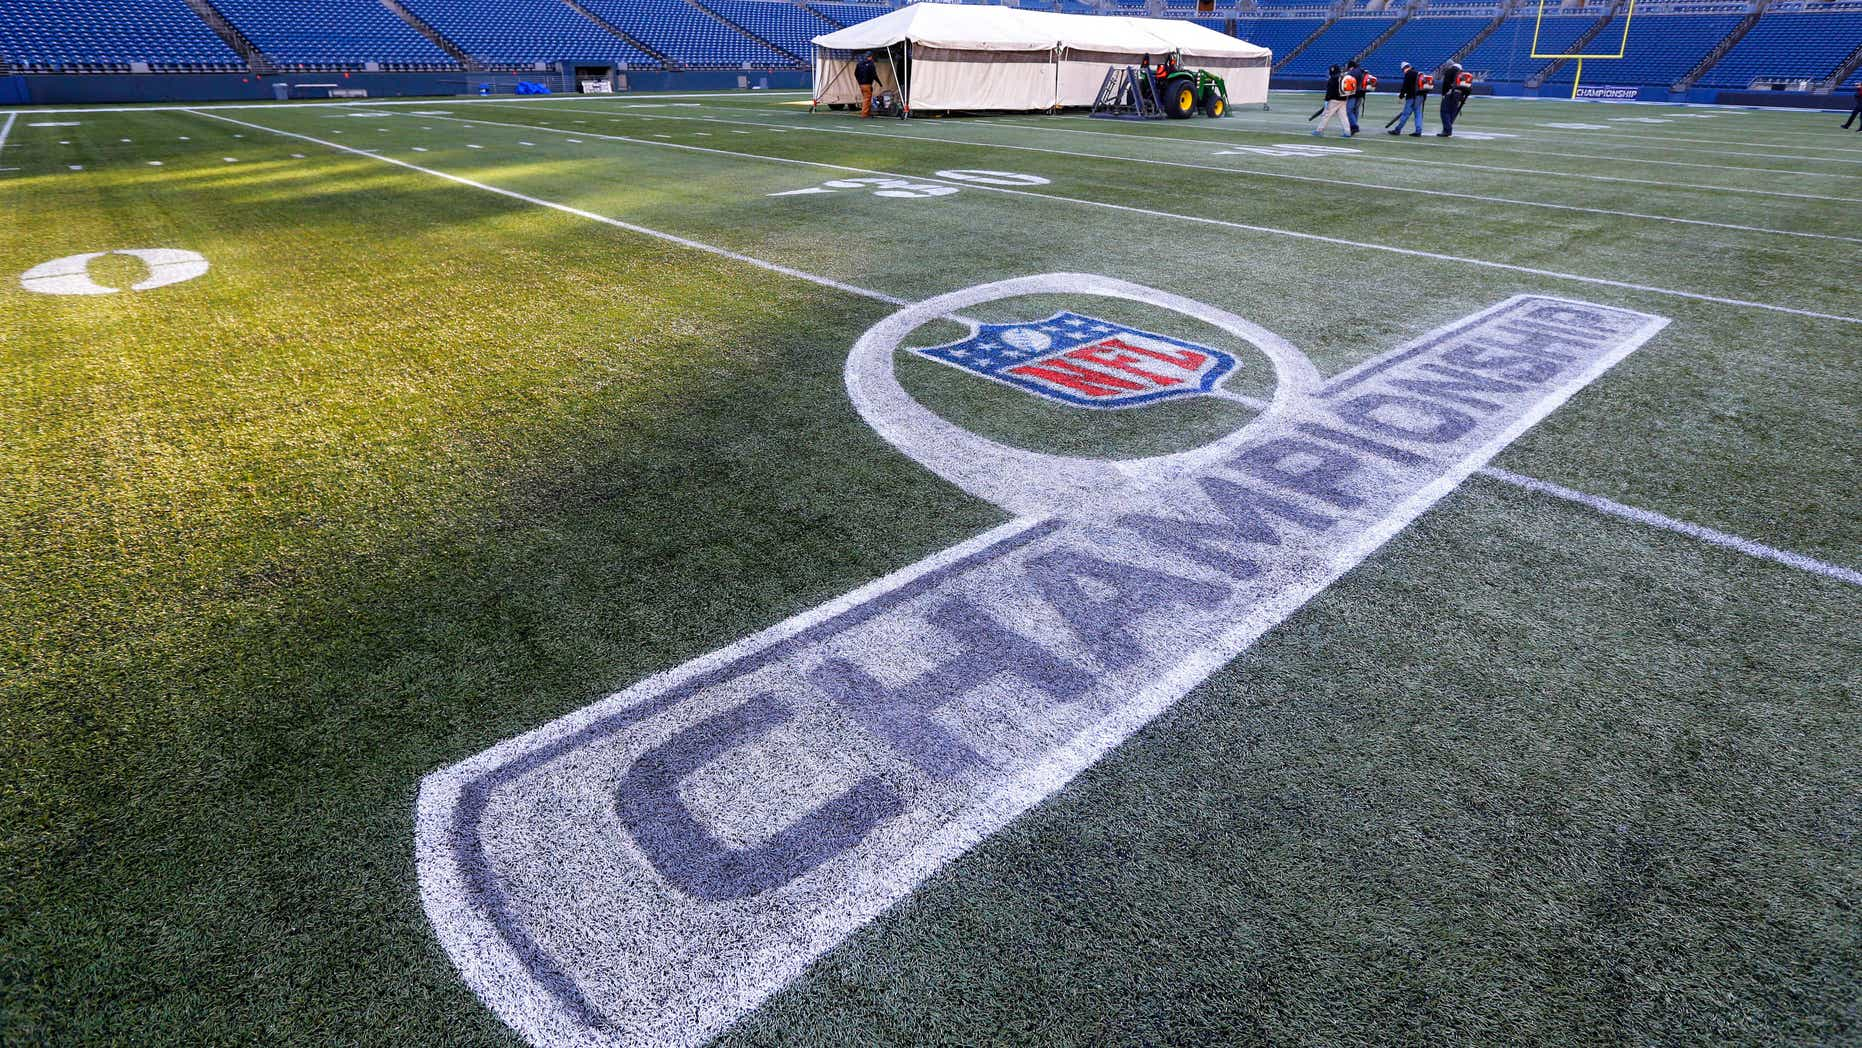 Jan. 14, 2015: A freshly painted NFL football Championship logo is shown at CenturyLink Field in Seattle.